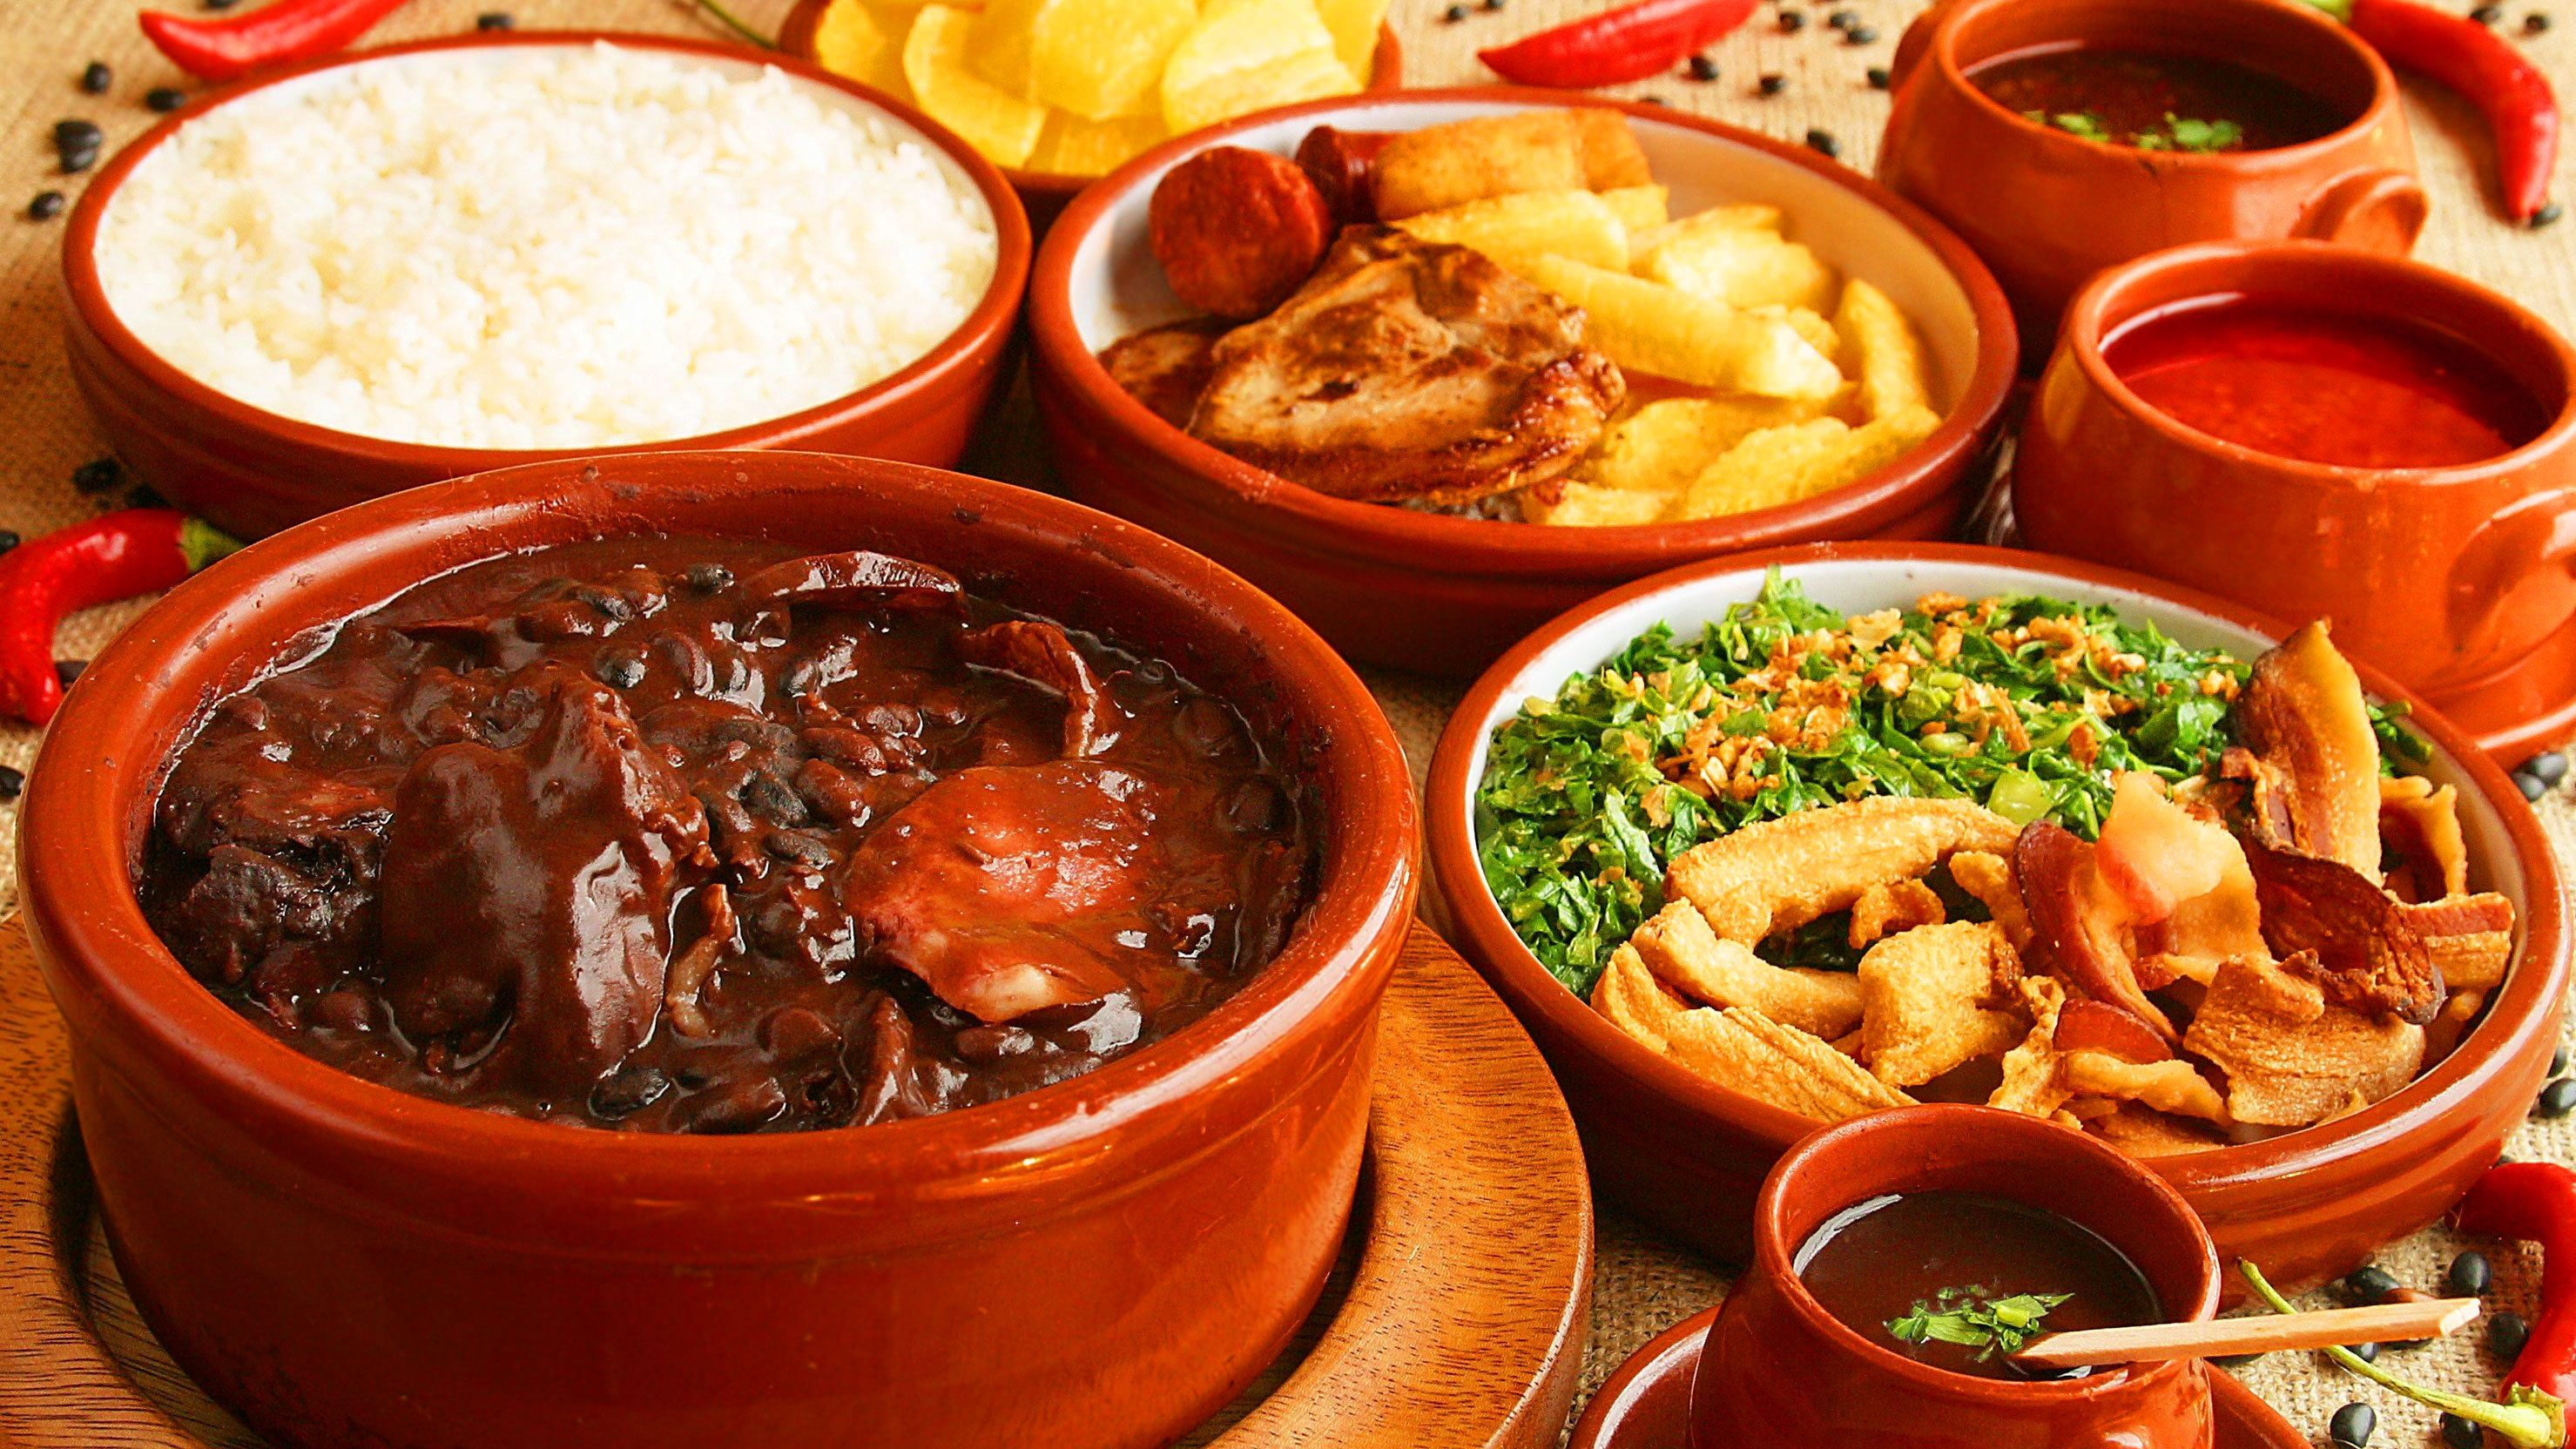 Bowls of Brazilian food on a table